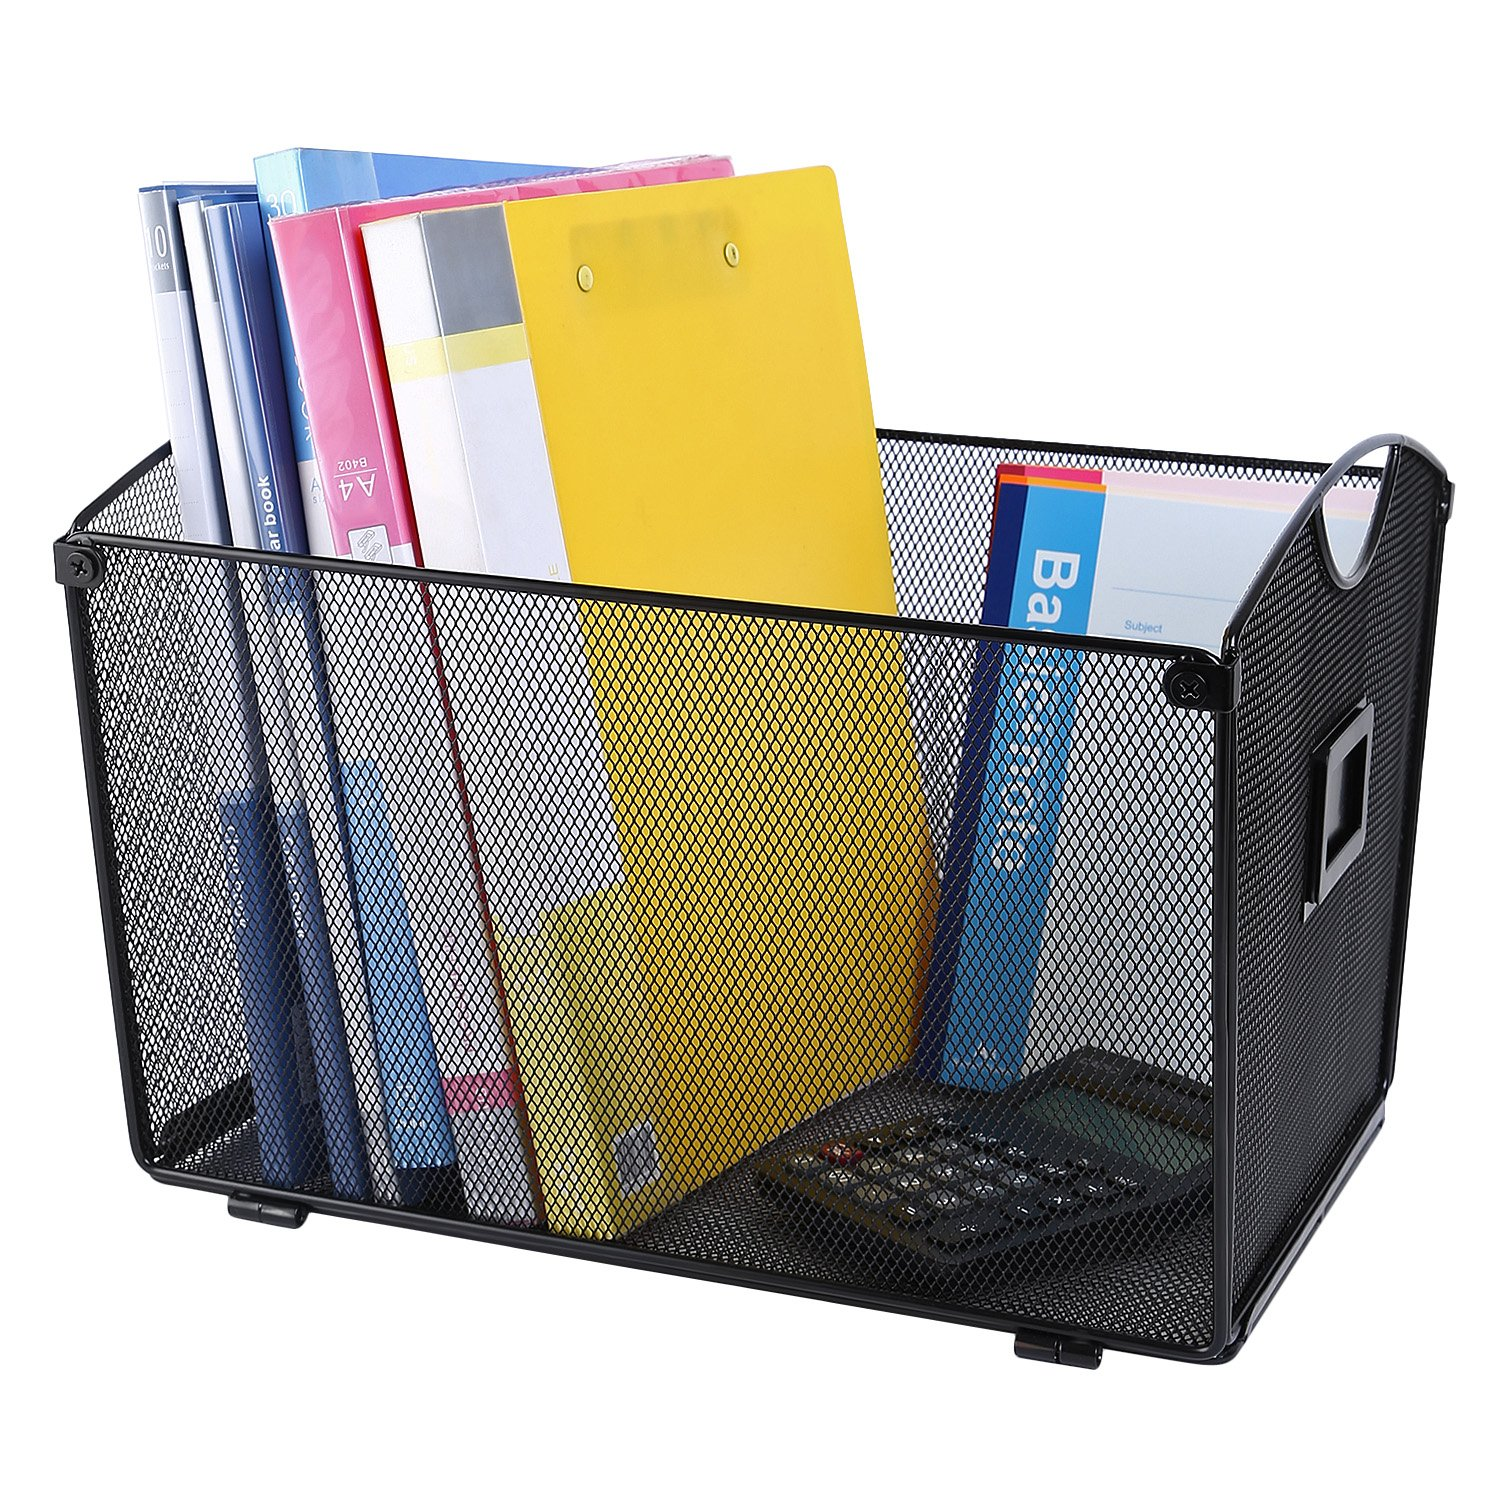 CRUODA Mesh Desktop Tub File Sorter Tray Organizer, Black, for Documents, Magazines, Notebooks